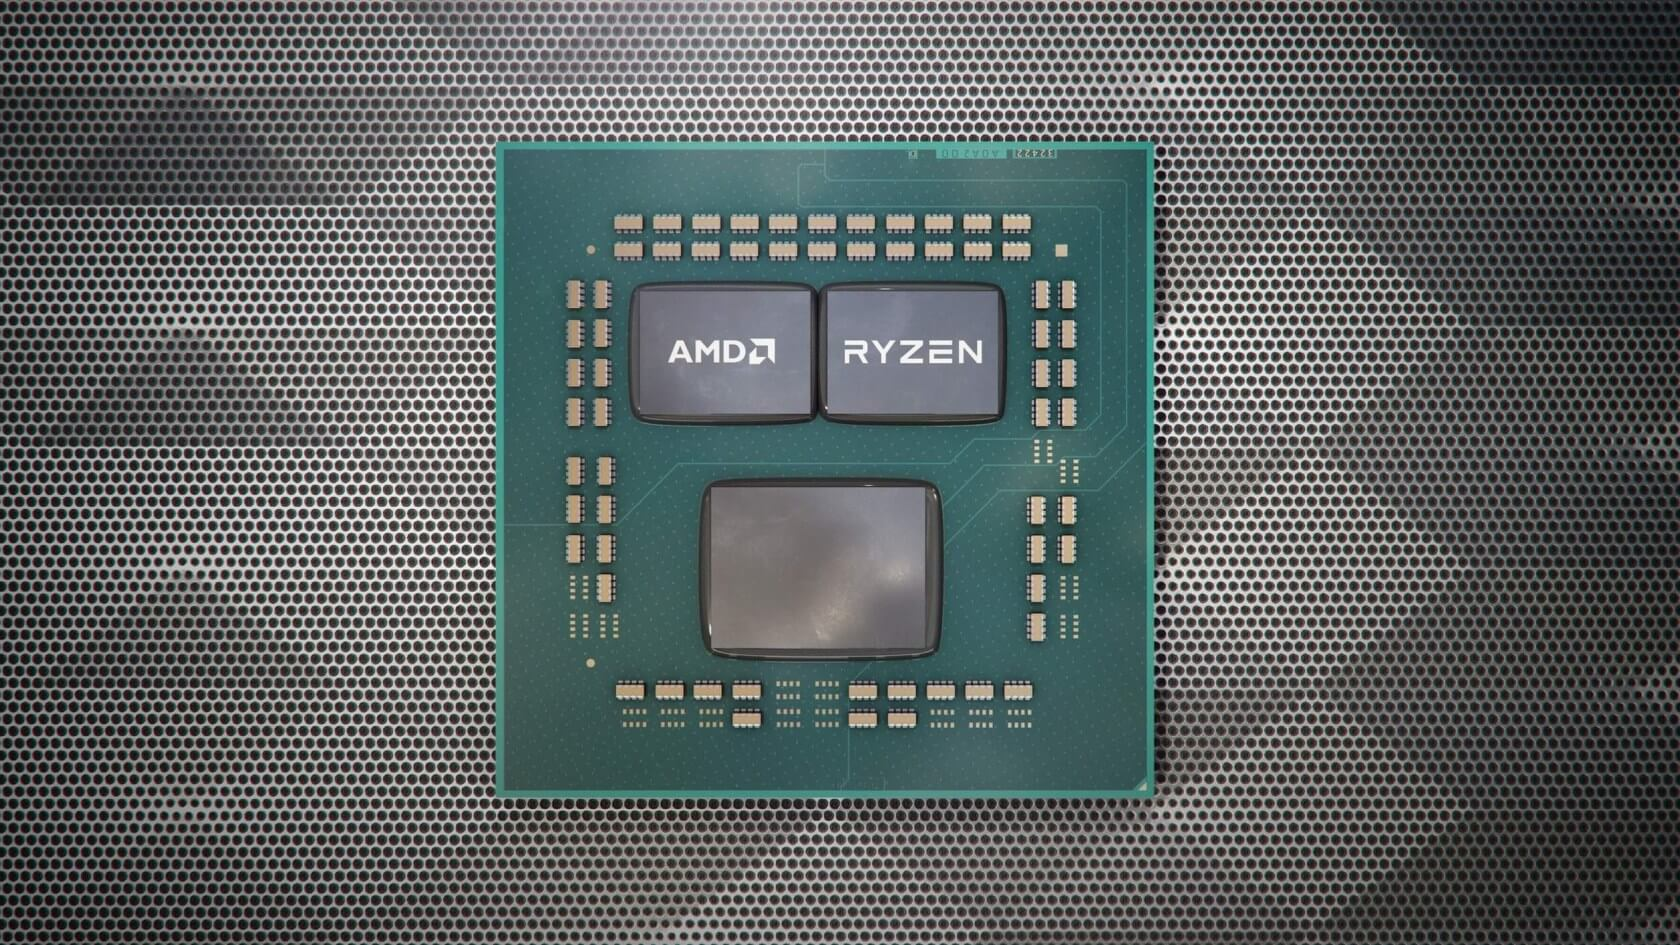 AMD assures Ryzen 3000 will perform equally across B450, X470, and